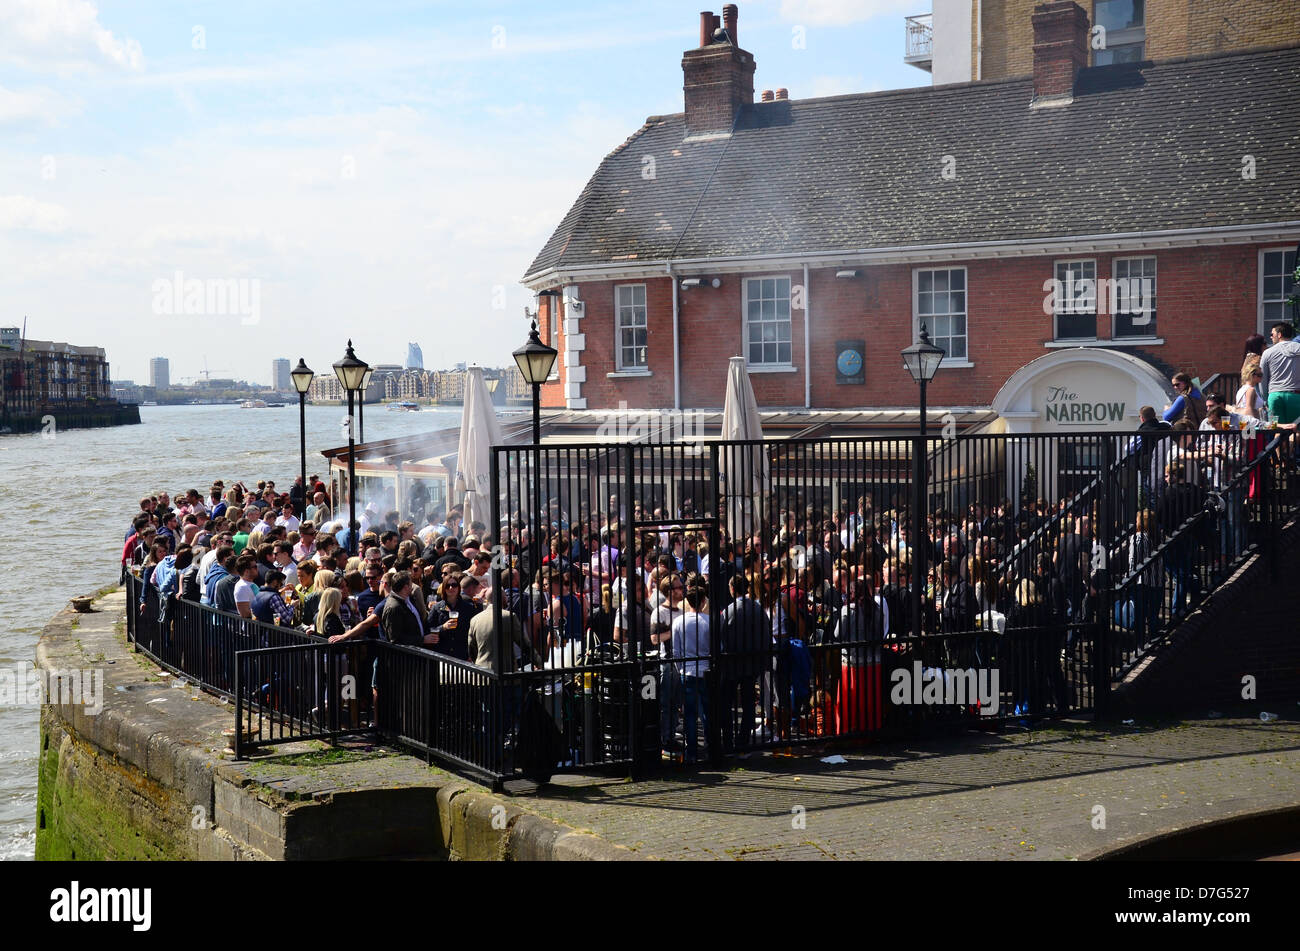 People drinking in the beer garden at The Narrow pub, Narrow Street, Limehouse, London, owned by Gordon Ramsay - Stock Image